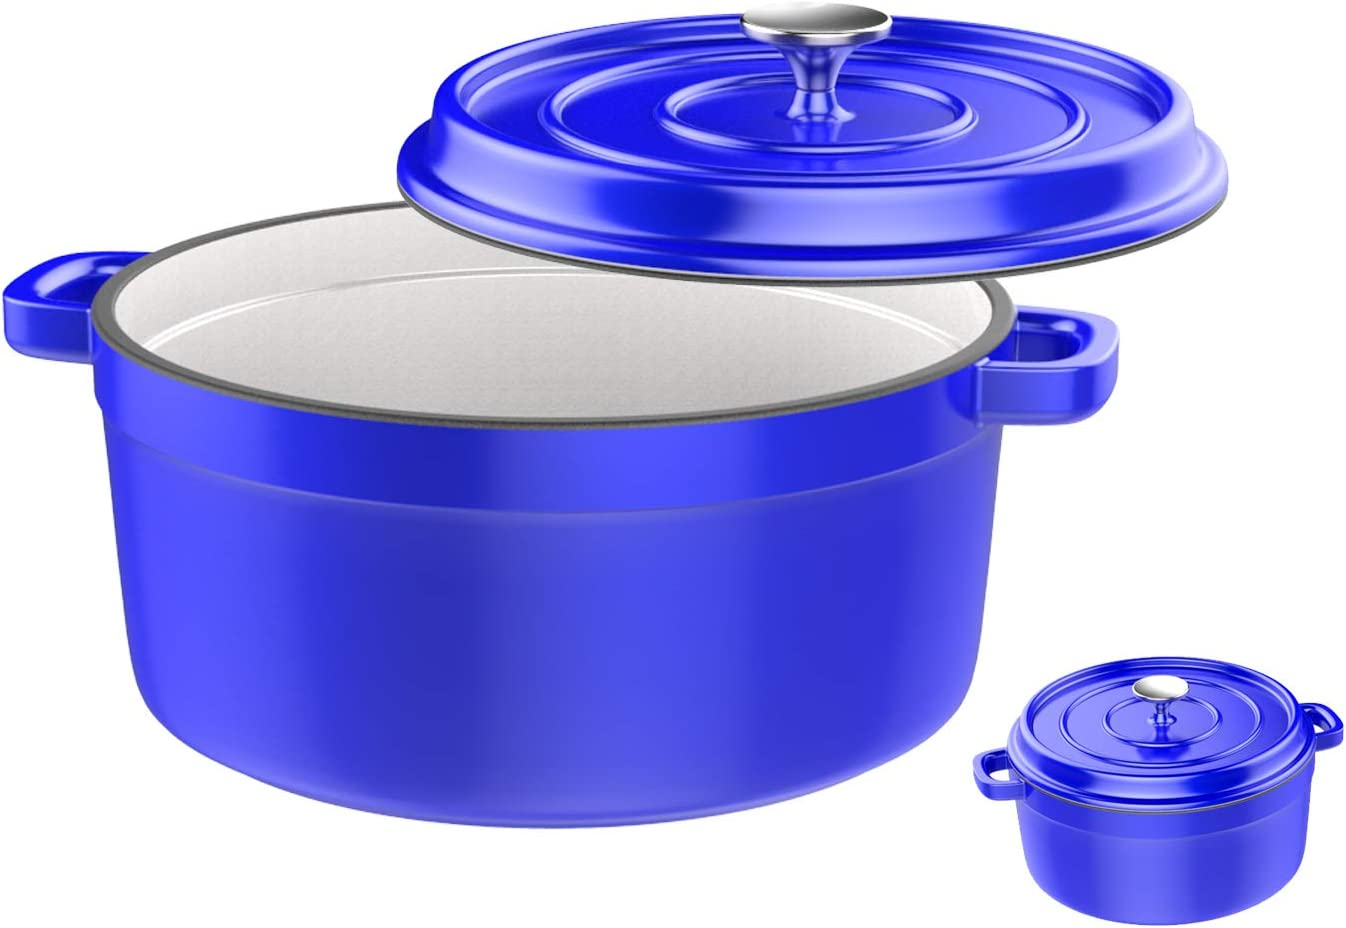 Especo Cast Iron with Lid Enameled Dutch Oven Casserole Dish Nonstick Multi-functional Cookware Large Loop Handles & Self-Basting Condensation Ridges On Lid (4-quart, Blue)